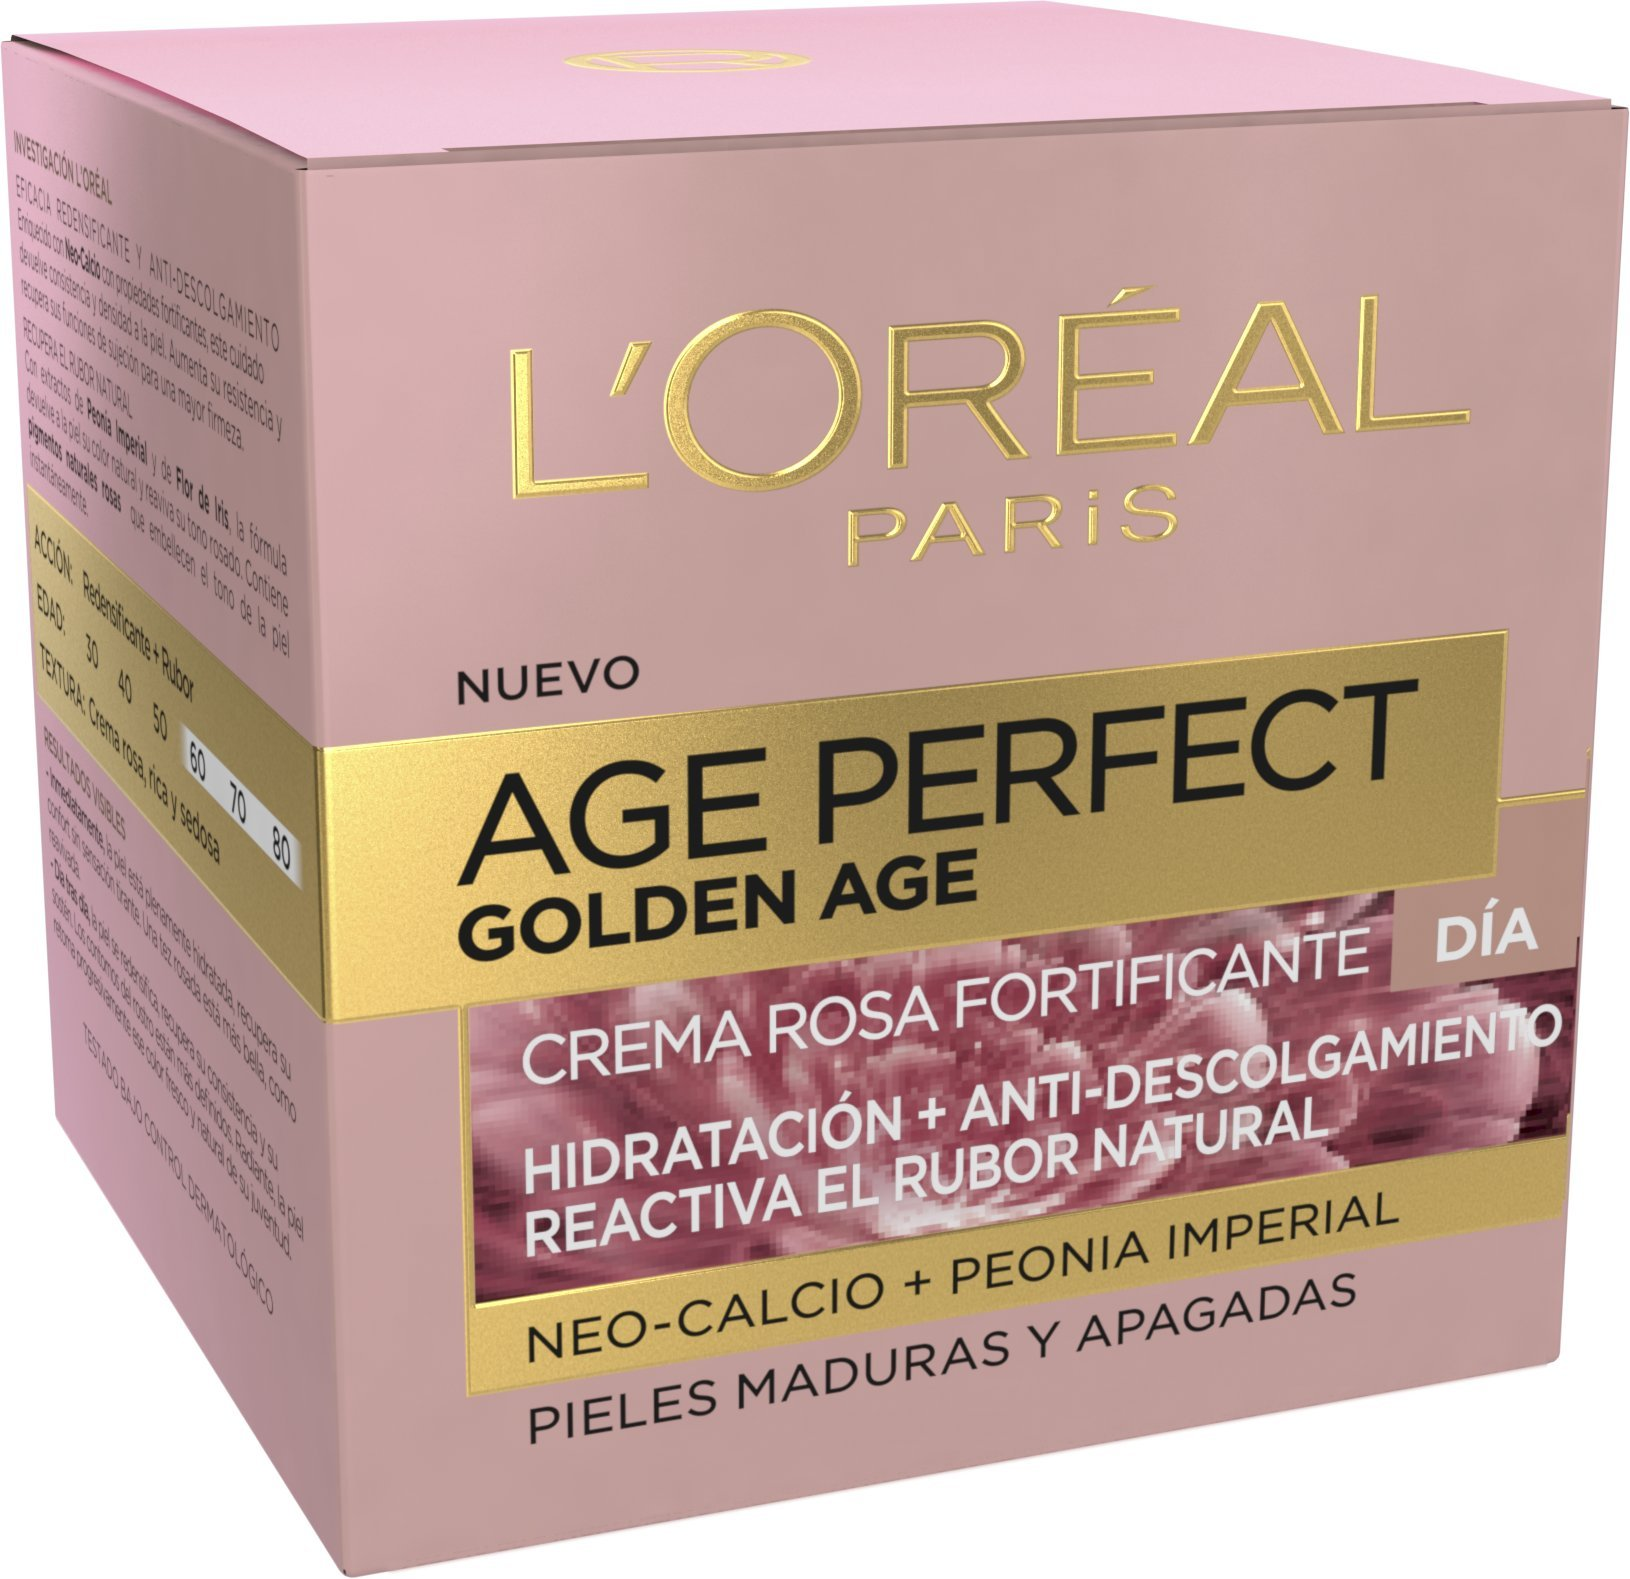 L'Oreal Paris Age Perfect Crema Hidratante Golden Age – 50 ml